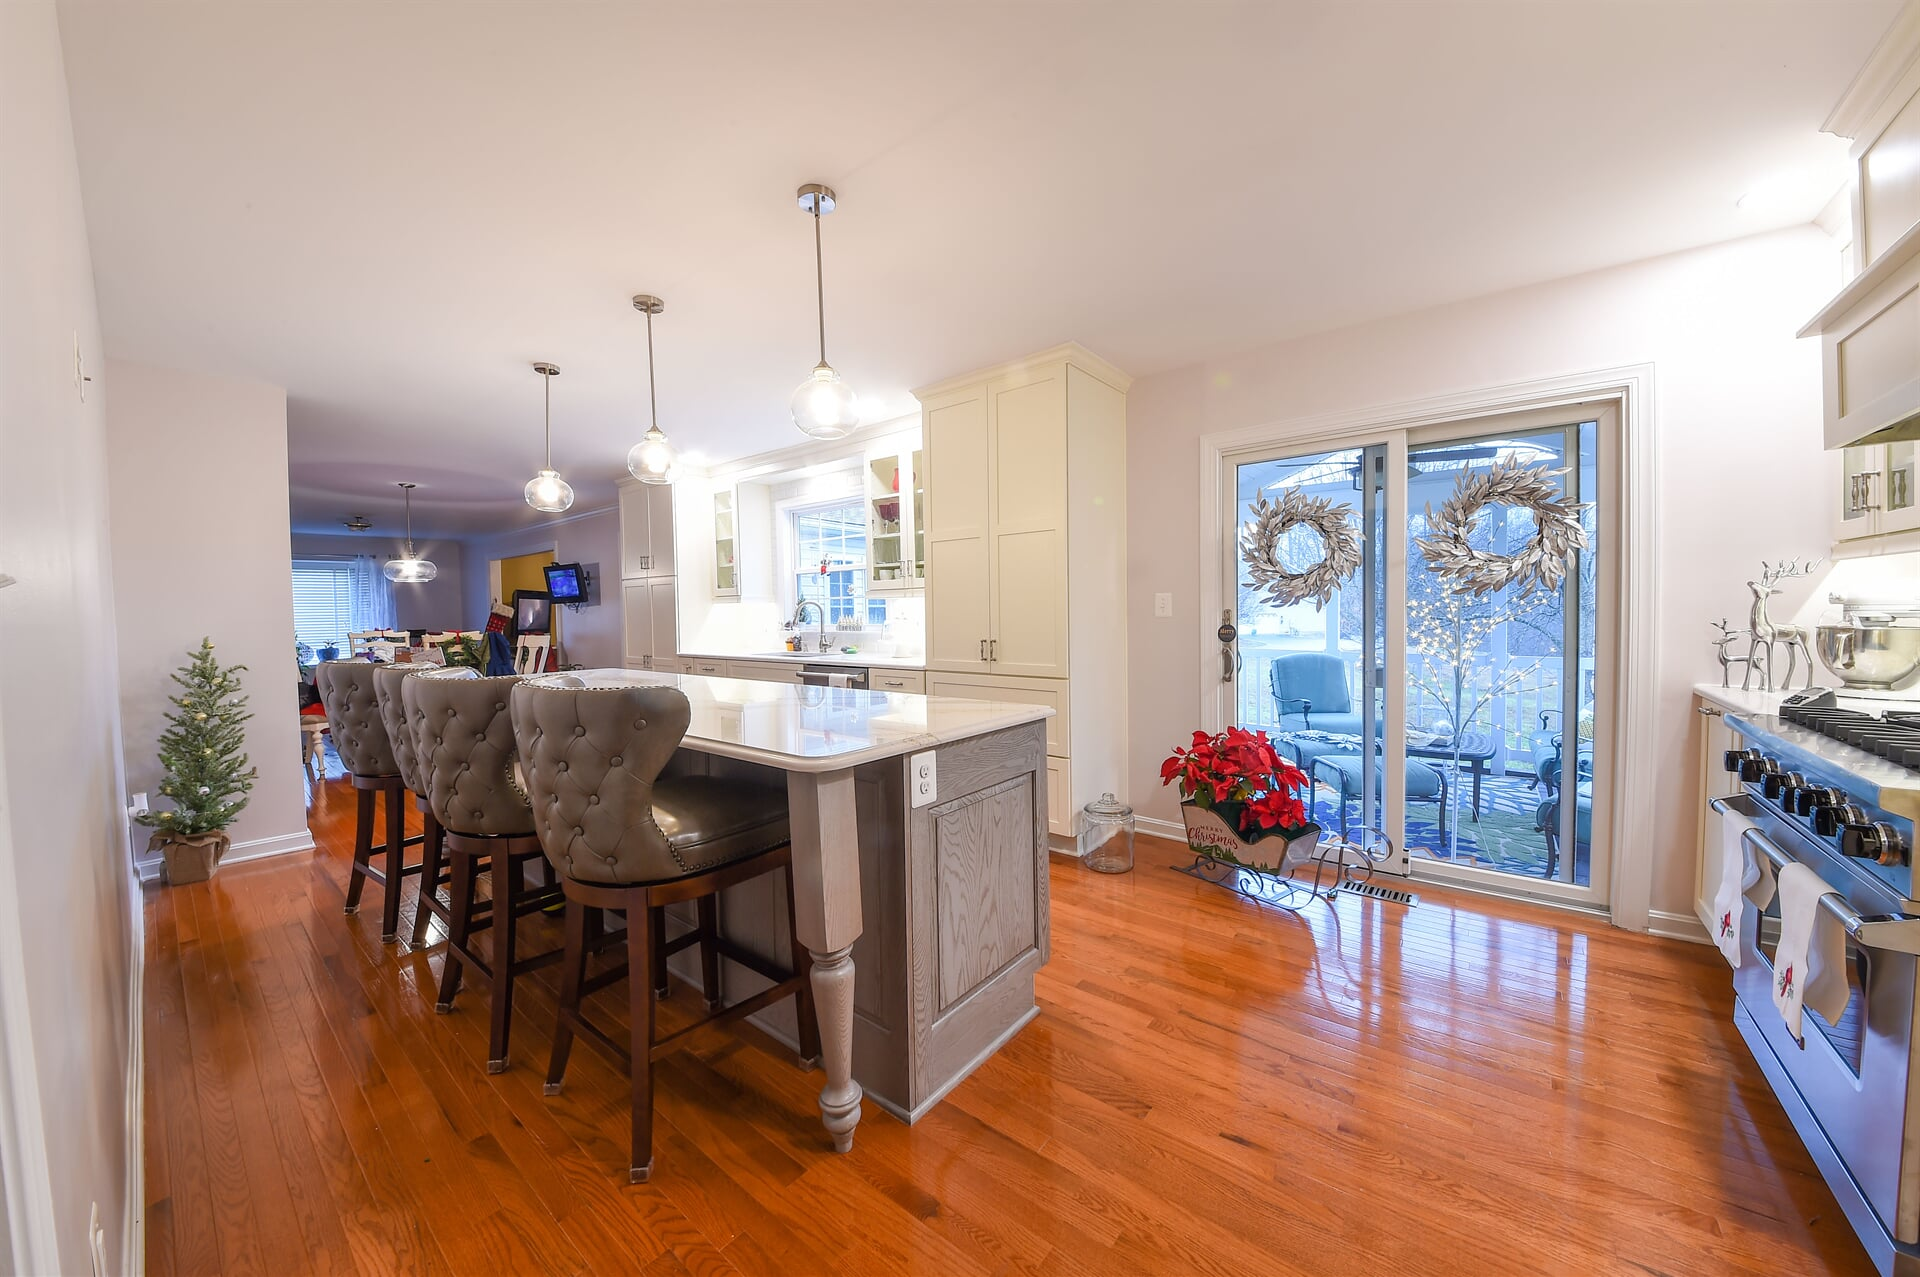 Kitchen remodeling in Lusby, MD by Southern Maryland Kitchen Bath Floors & Design